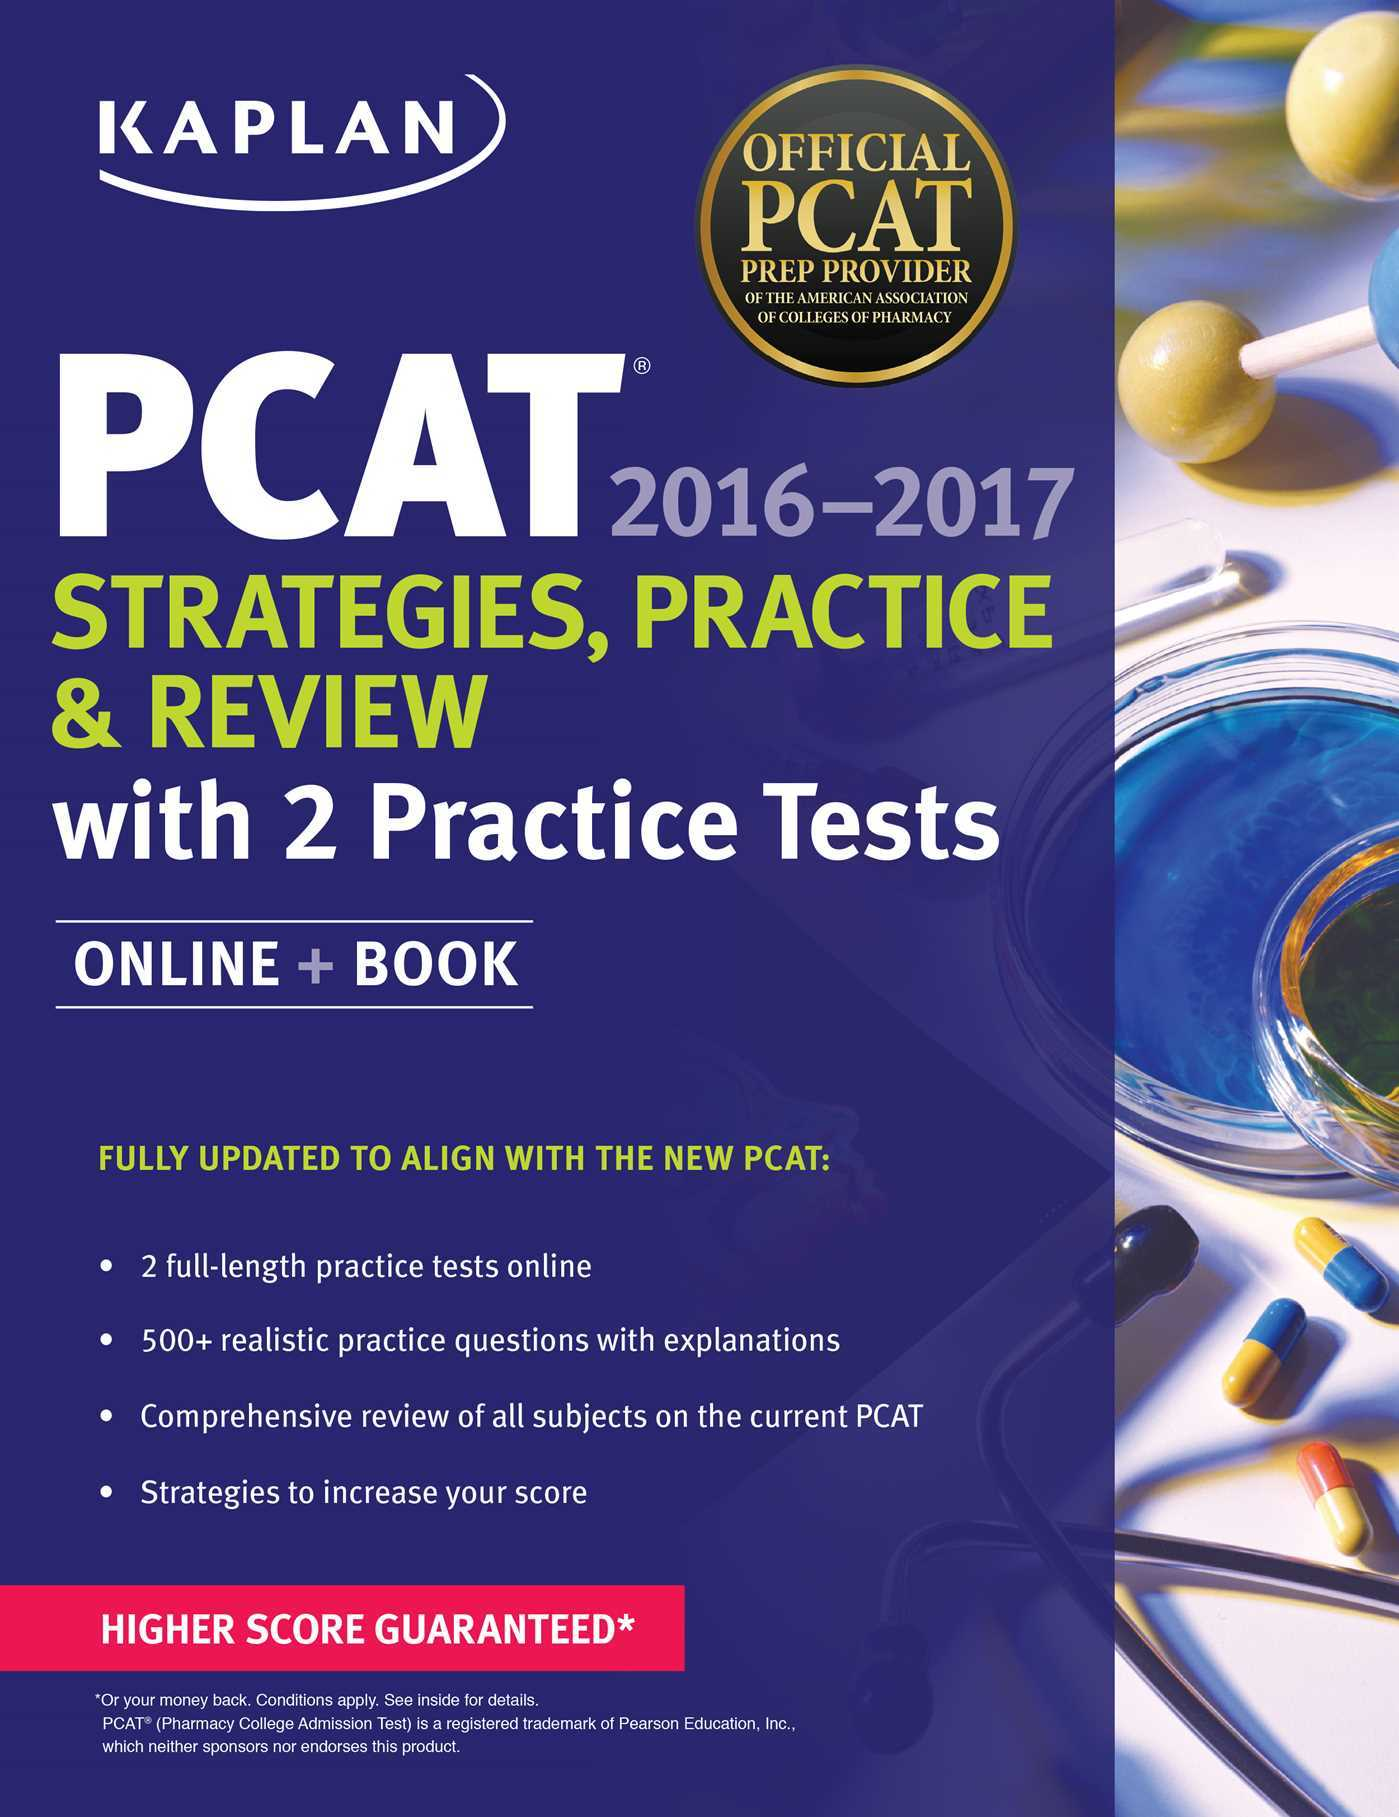 Kaplan PCAT 2016-2017 Strategies, Practice, and Review with 2 Practice Tests: Online + Book  by  Kaplan